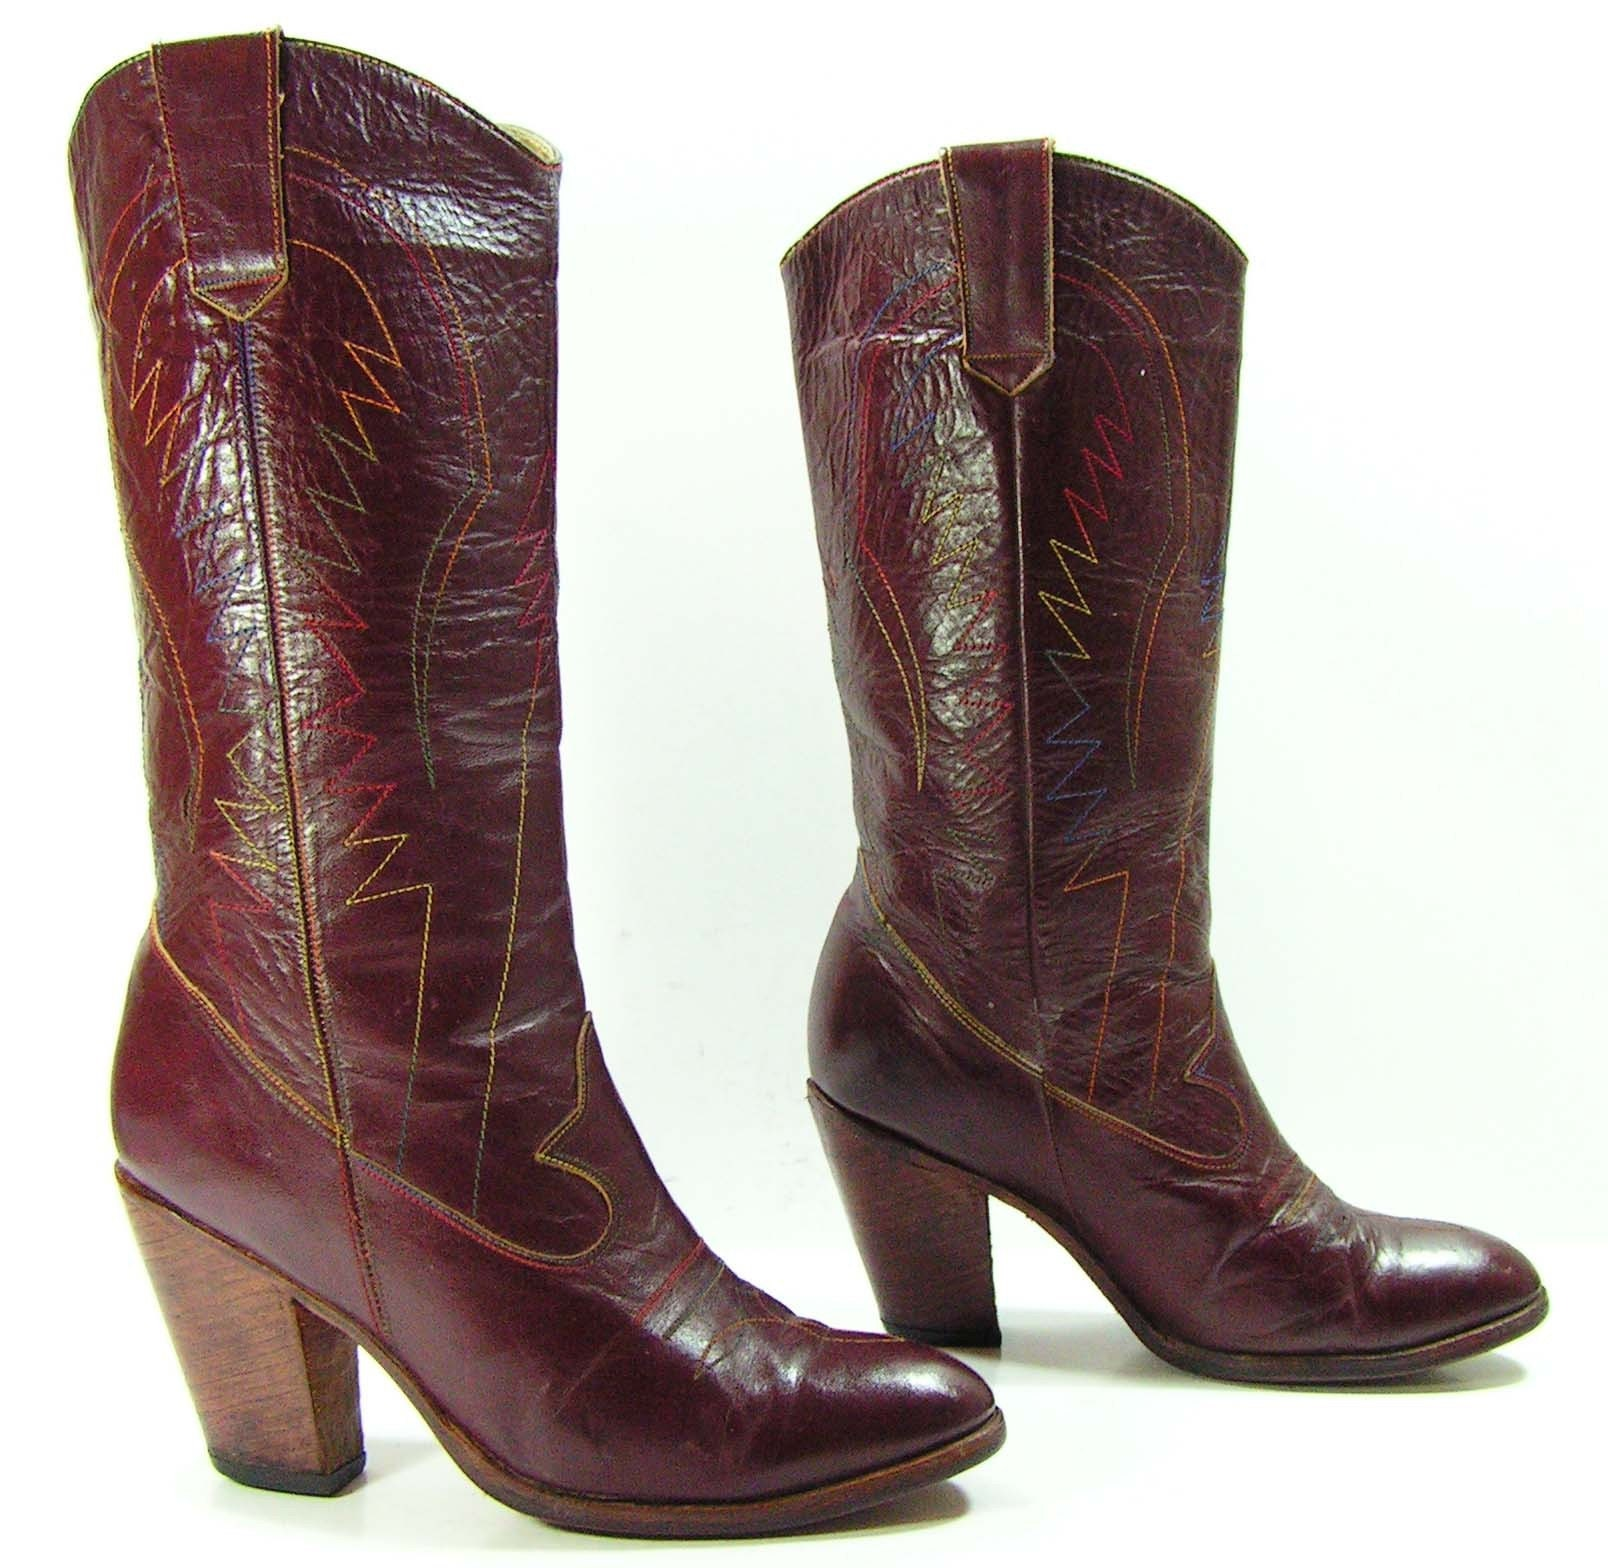 Cowboy Boots Womens 7 M B Burgundy High Heel Leather Western